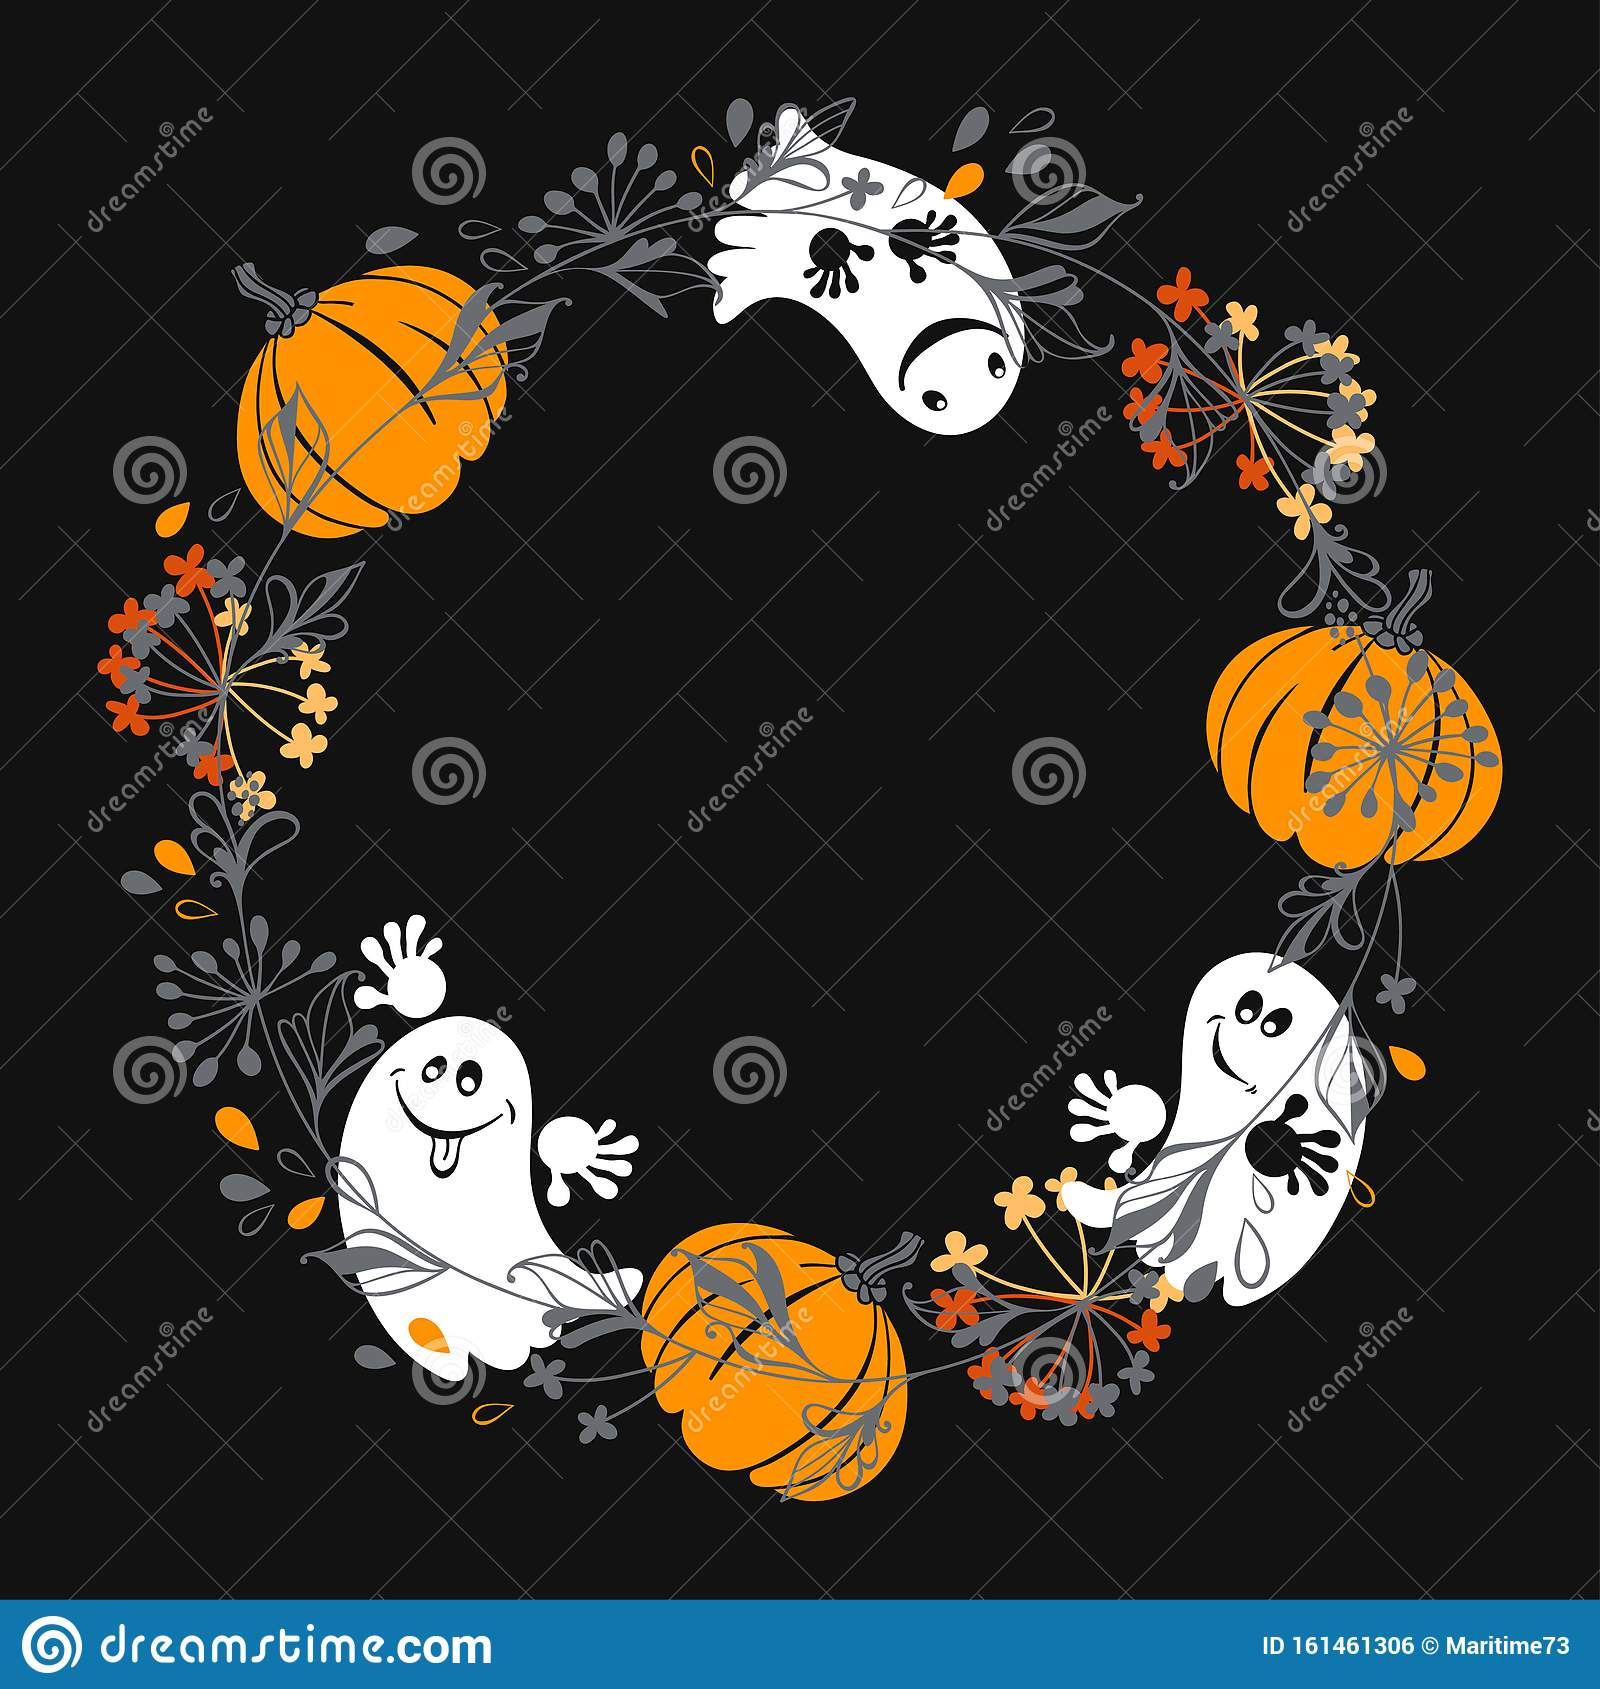 Halloween Background With Funny Ghosts And Pumpkins. Round